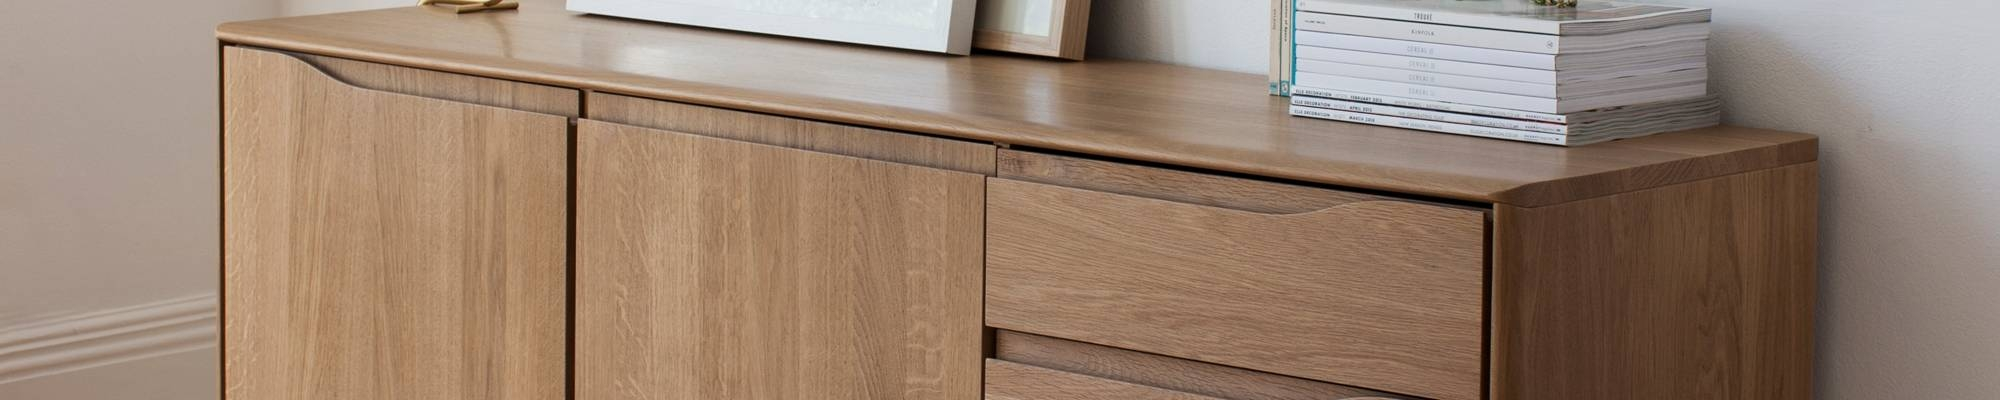 Designer Sideboards | Modern & Contemporary Sideboards | Heal's in Contemporary Sideboards (Image 10 of 30)